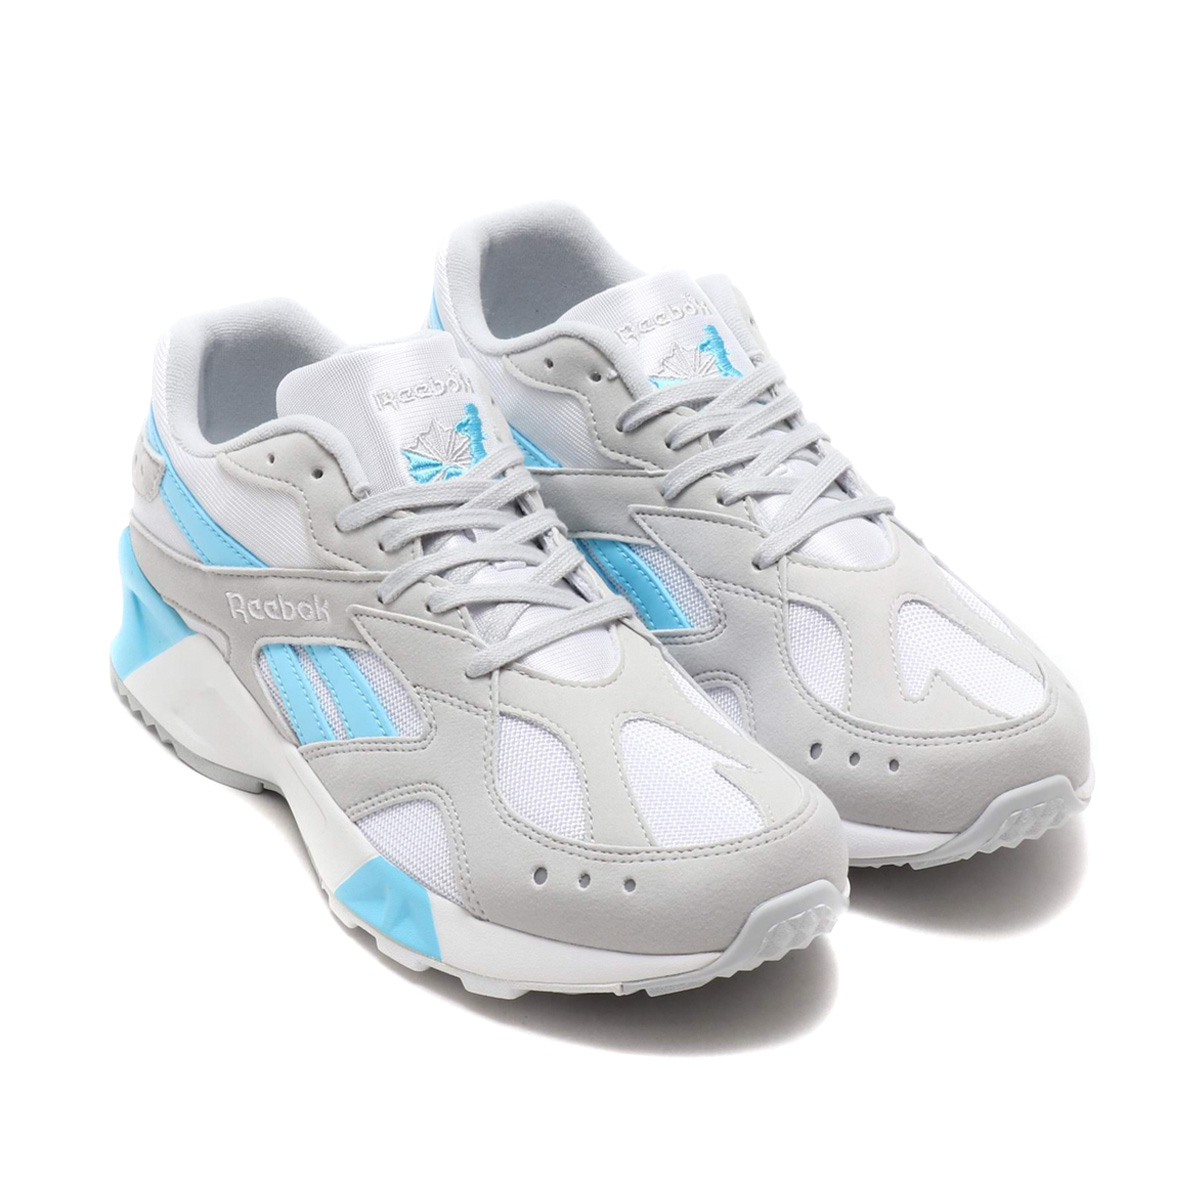 af8dc7b275c0 Reebok AZTREK 90s (Reebok as trek 90s) (SKULL GRAY WHITE DIGITAL BLUE)  18FA-I